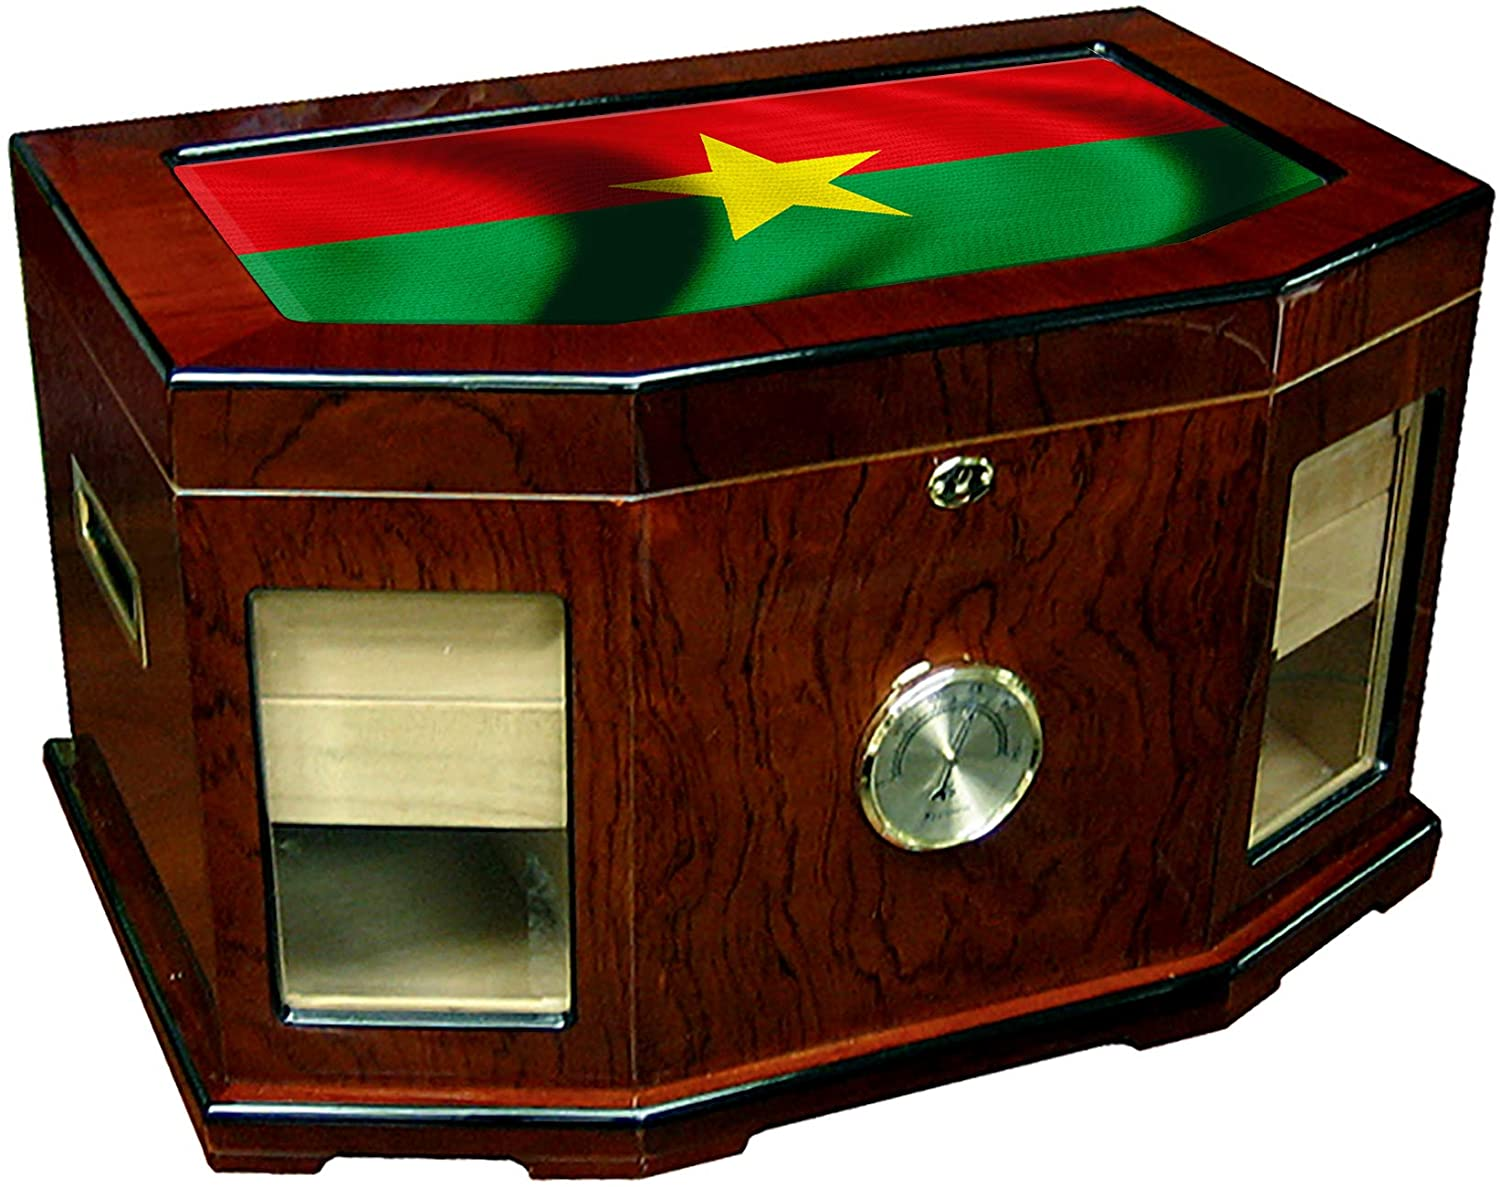 Large Premium Desktop Humidor - Glass Top - Flag of Burkina Faso (Burkinabe) - Waves Design - 300 Cigar Capacity - Cedar Lined with Two humidifiers & Large Front Mounted Hygrometer.